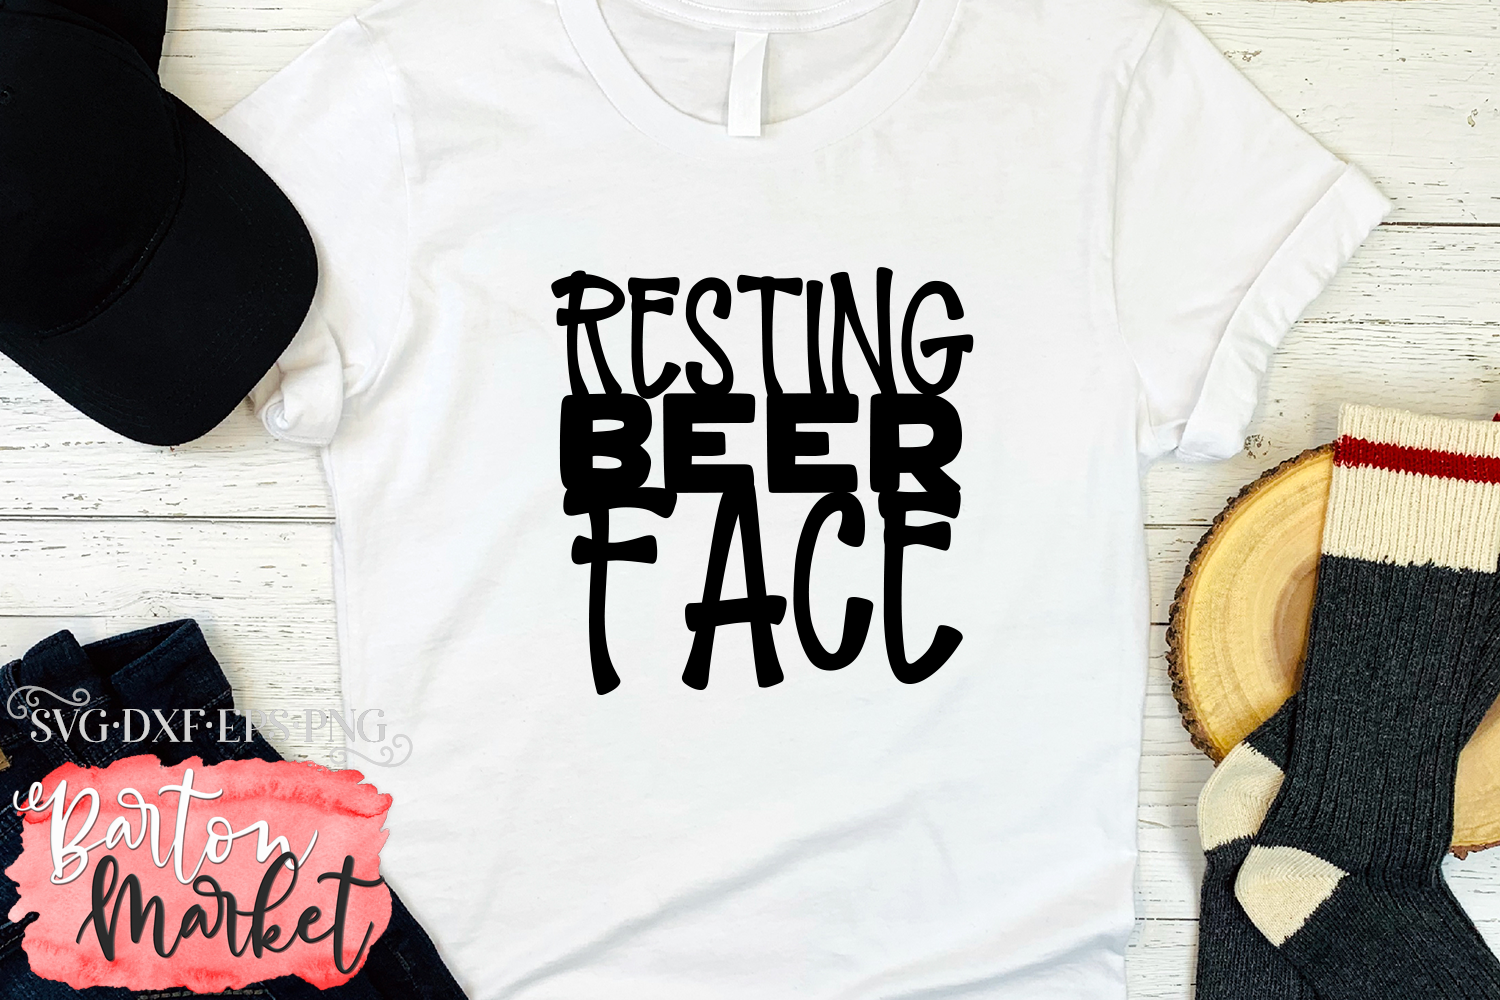 Resting Beer Face SVG DXF EPS PNG example image 2